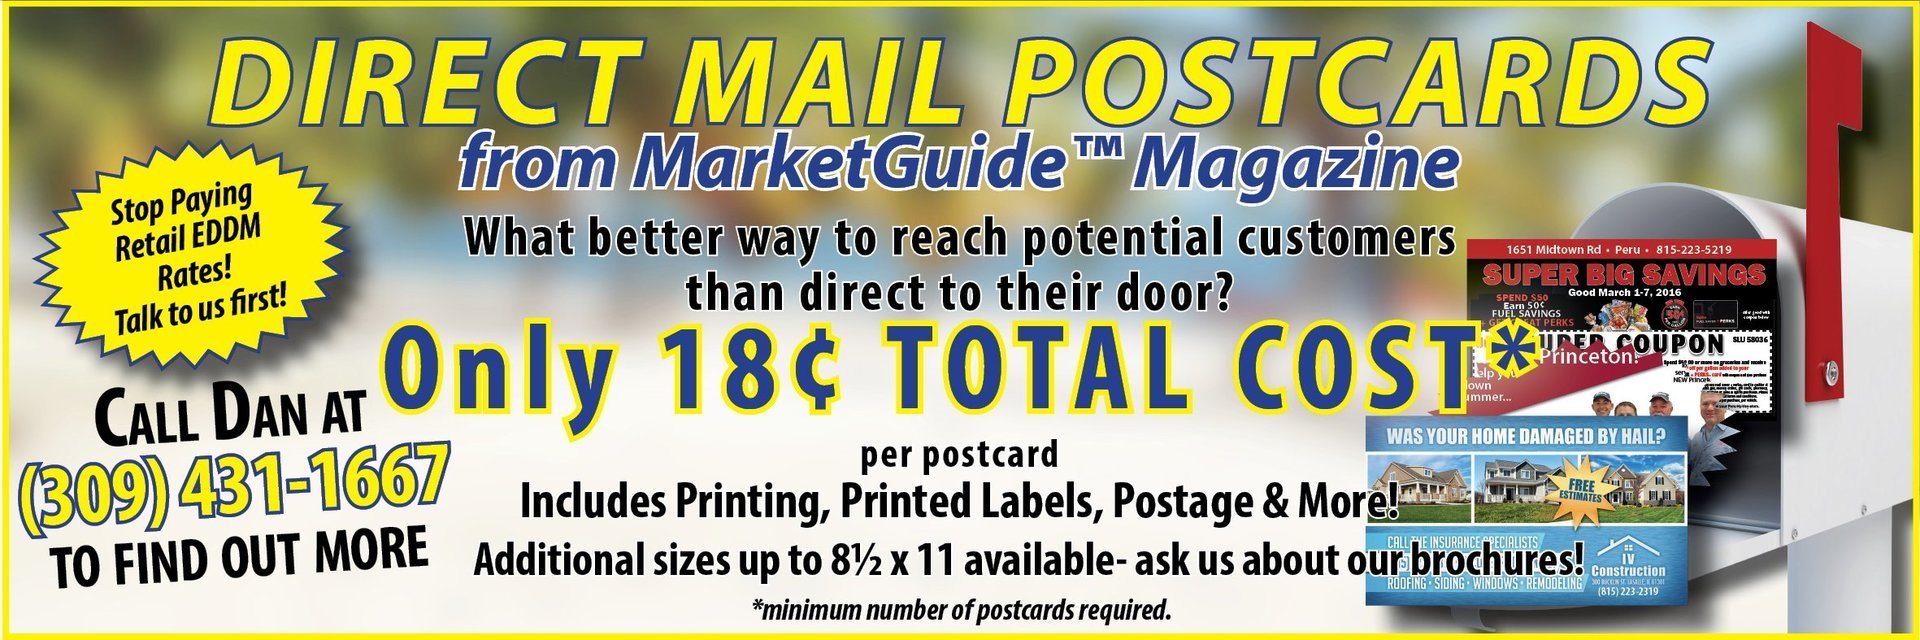 Direct Mail Advertising Postcards MarketGuide Magazine